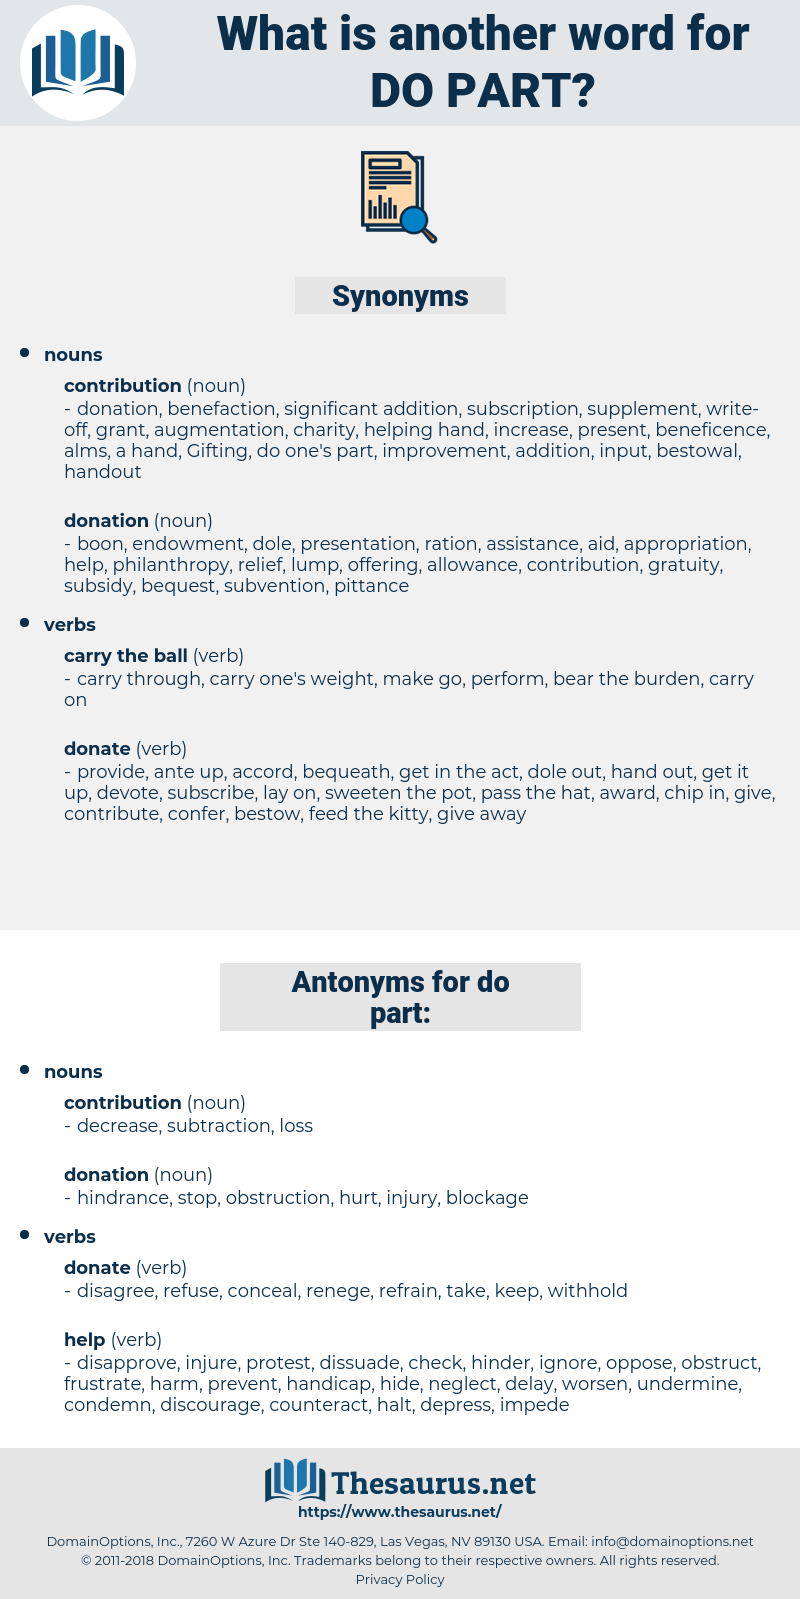 do part, synonym do part, another word for do part, words like do part, thesaurus do part